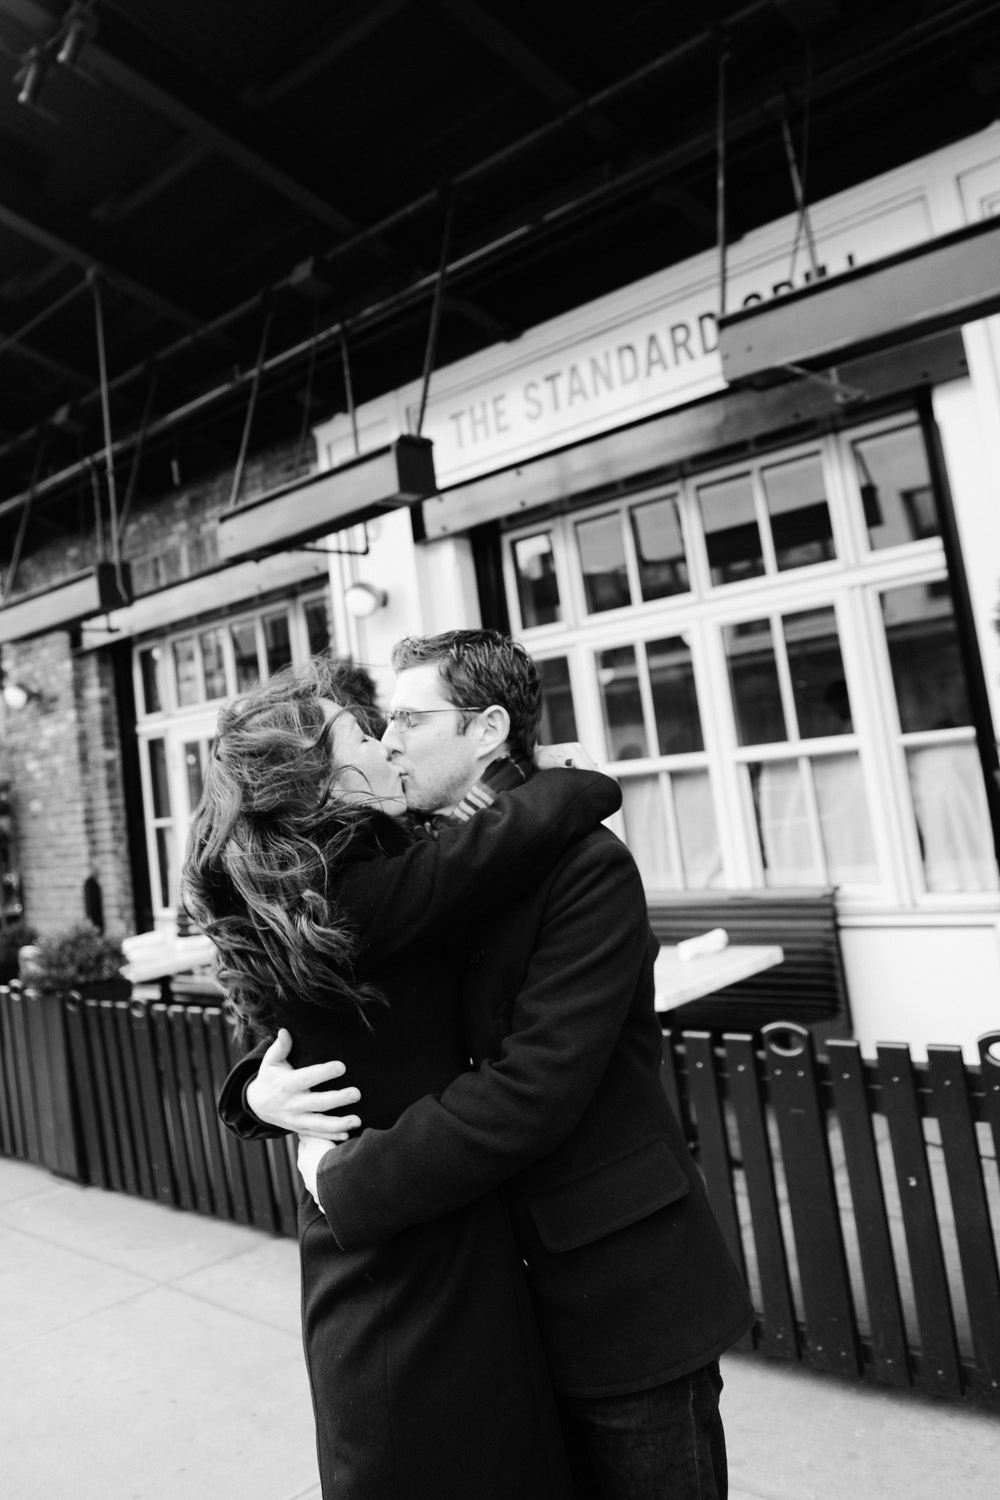 Enggement Shooting in the Meatpacking District with Yena and Andrew from Engagement Photographer New York XOANDREA